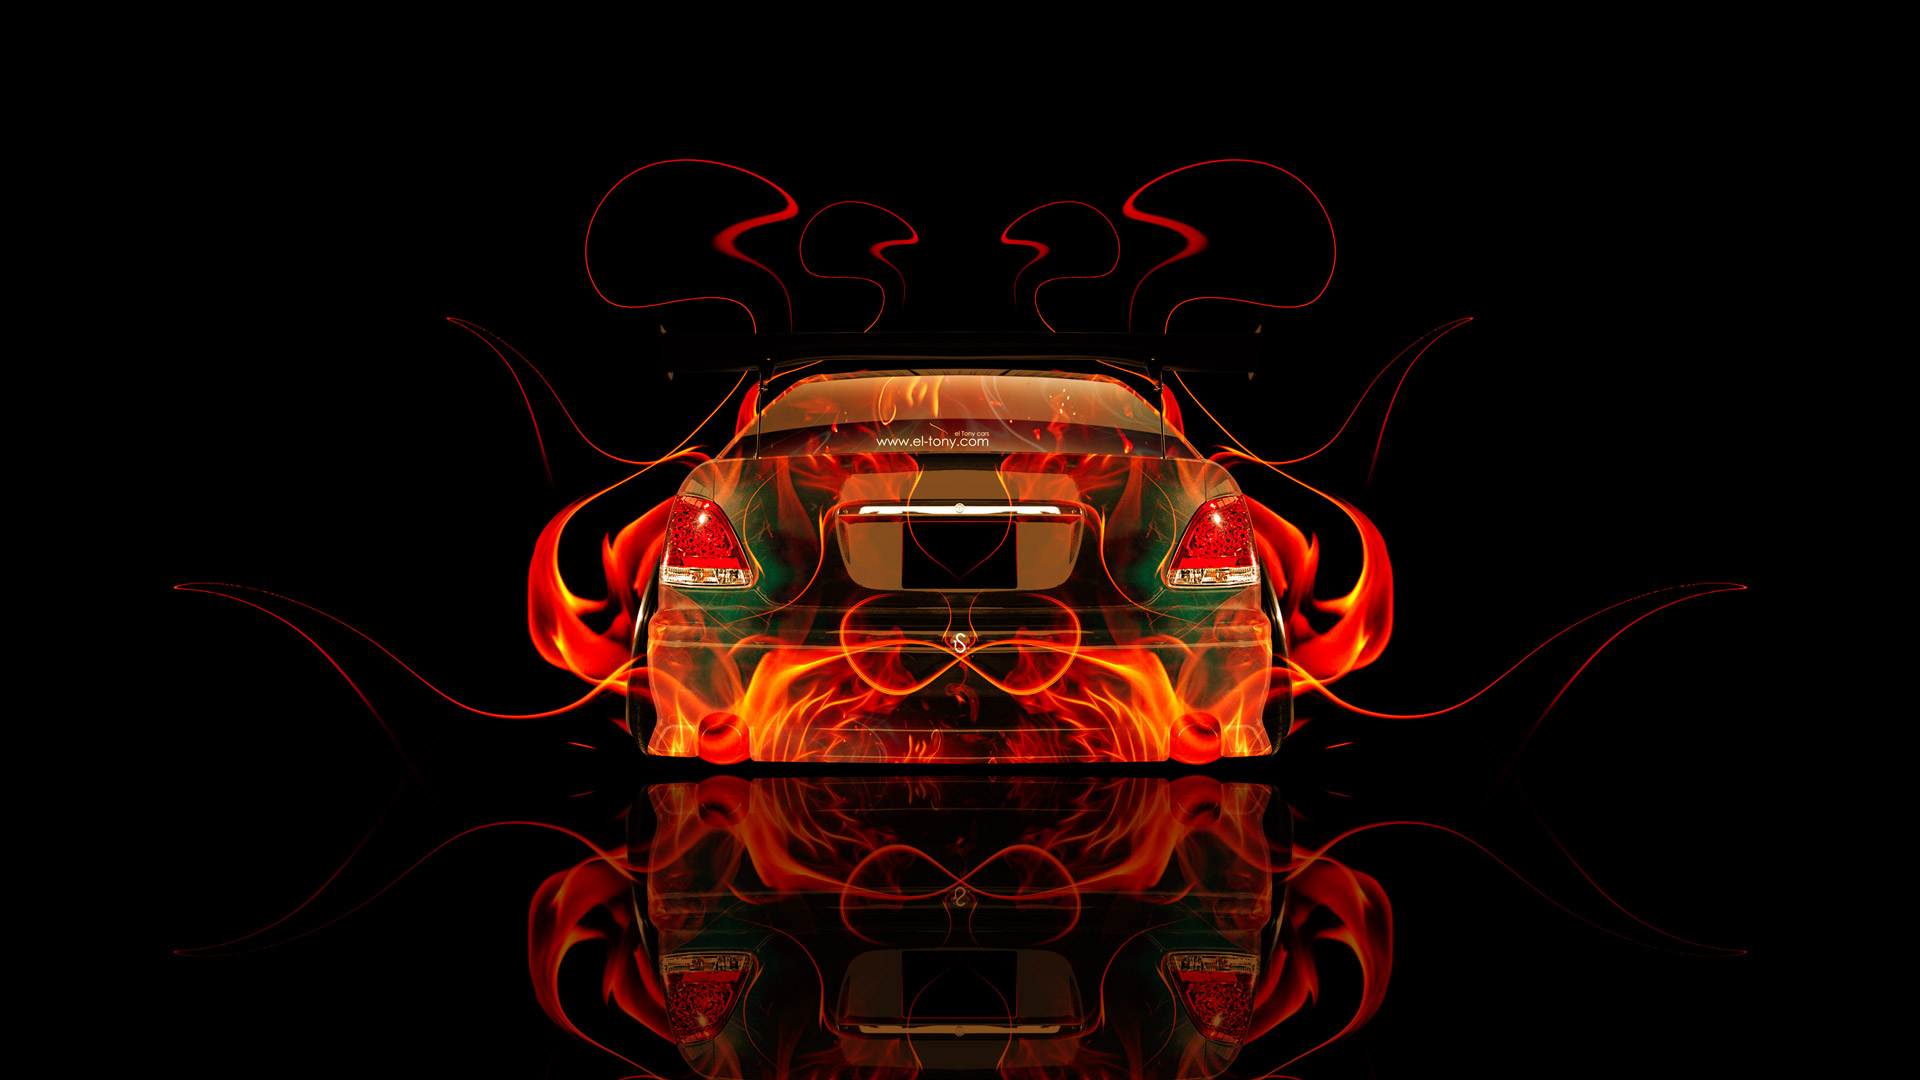 Toyota Aristo JDM Tuning Back Fire Abstract Car